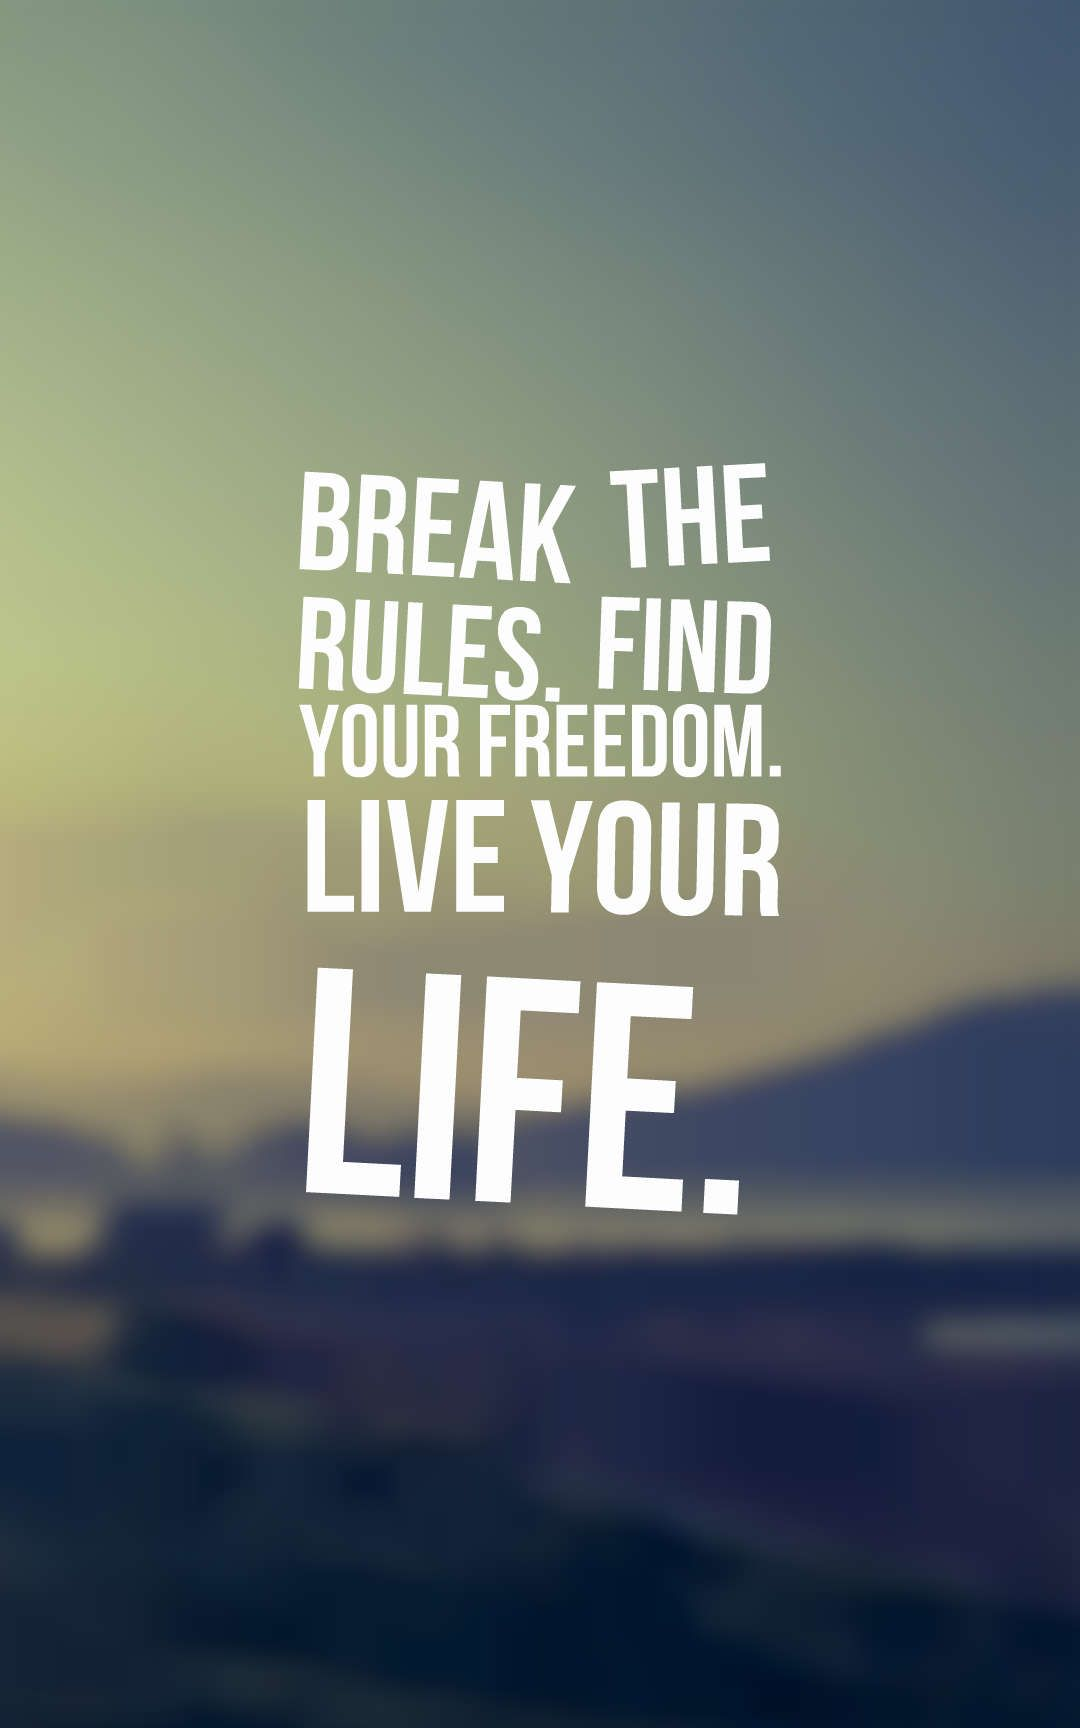 Break the rules. Find your freedom. Live your life.  Freedom